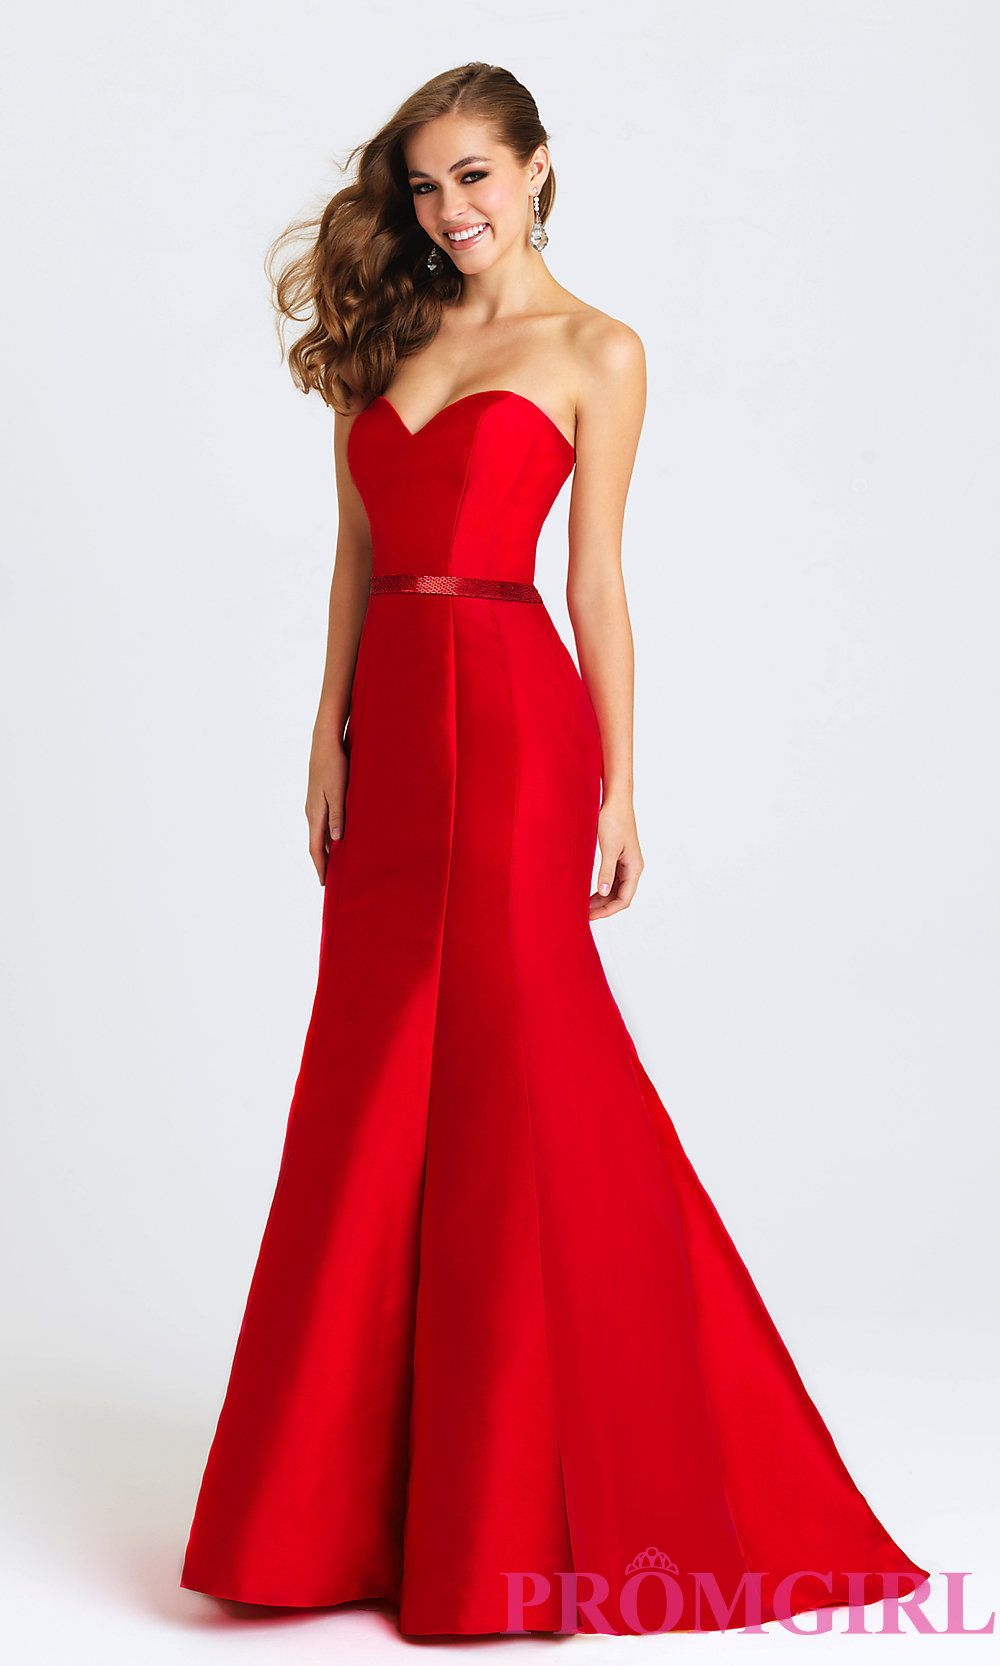 efa57675a9 Long Strapless Mermaid Style Prom Dress by Madison James